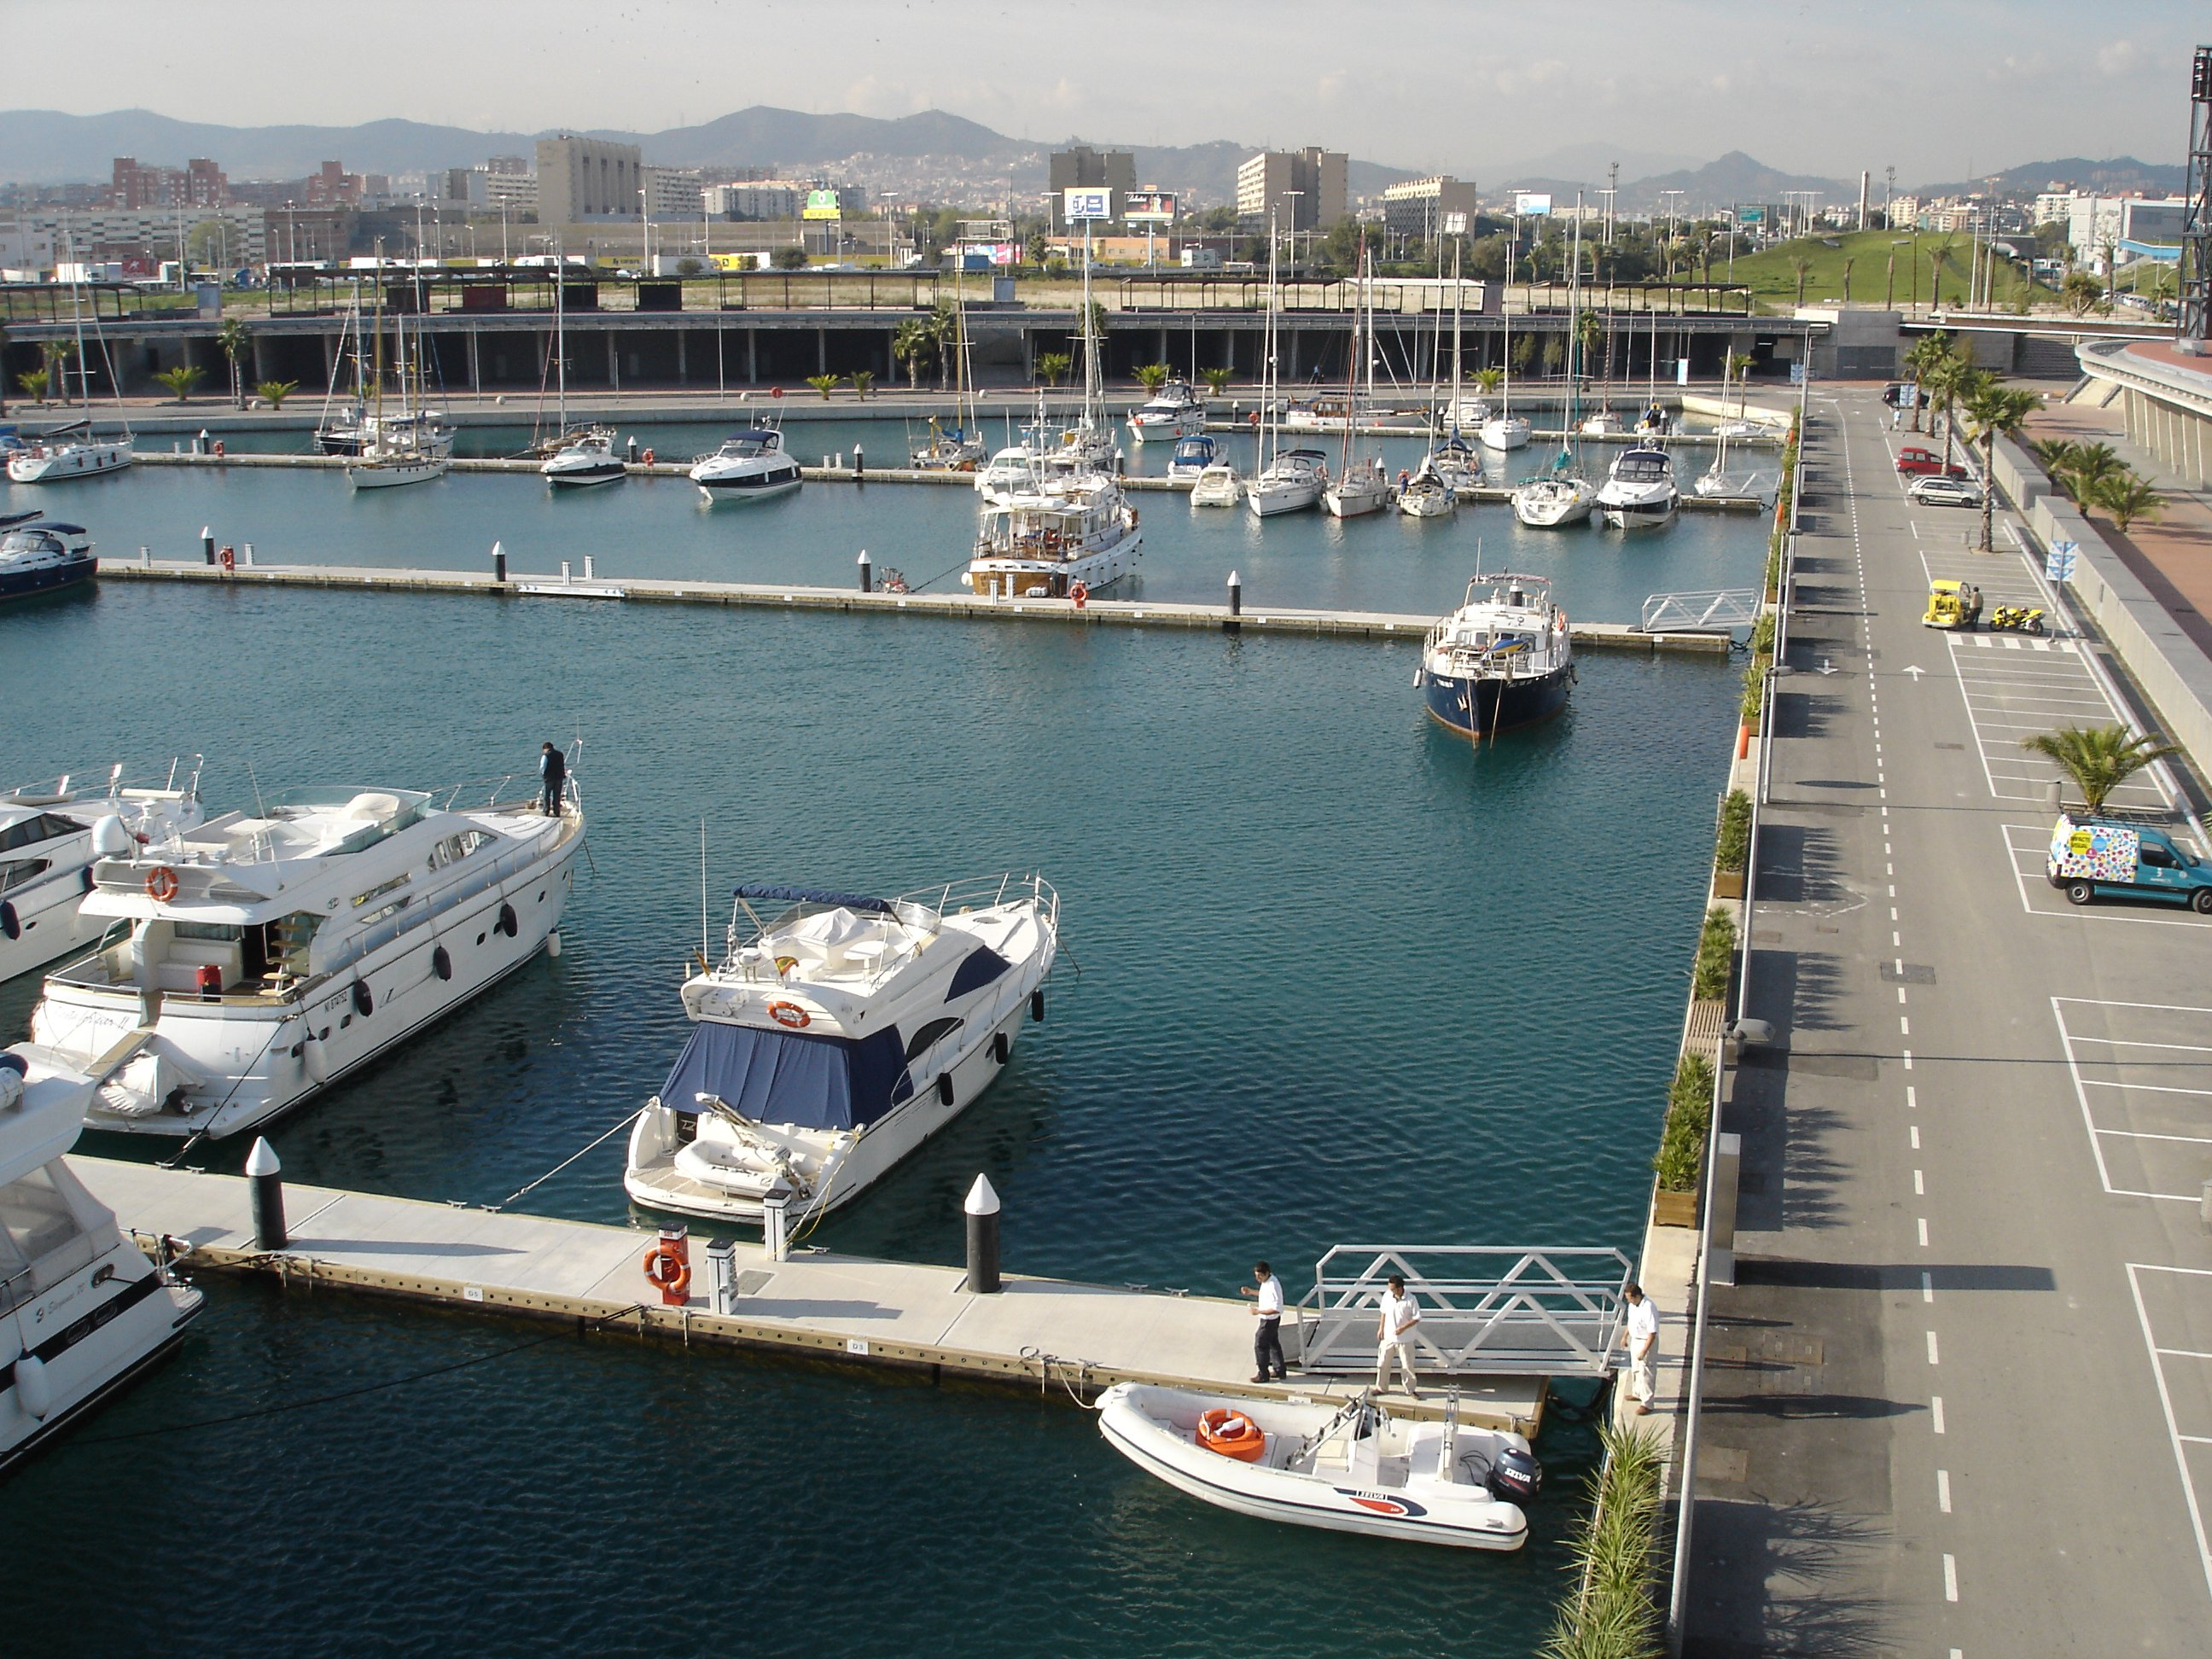 SERVICES: Speed Boat Sailboat Yacht Catamaran Inflatable Watercraft Marina Marine